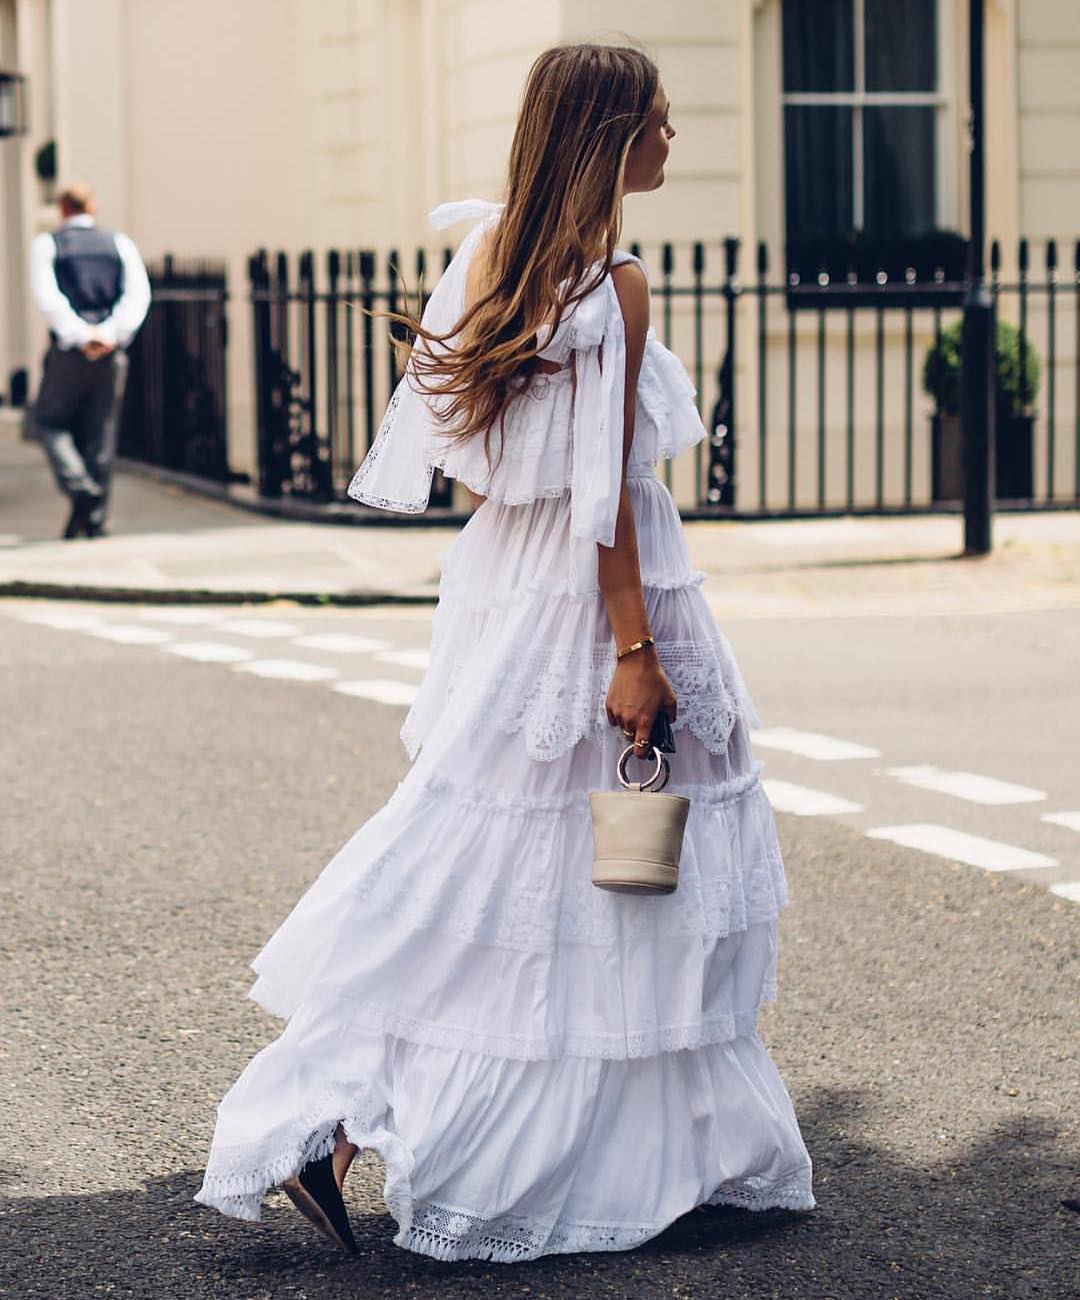 Sleeveless White Ruffled Maxi Dress With Crochet Details For Summer 2020